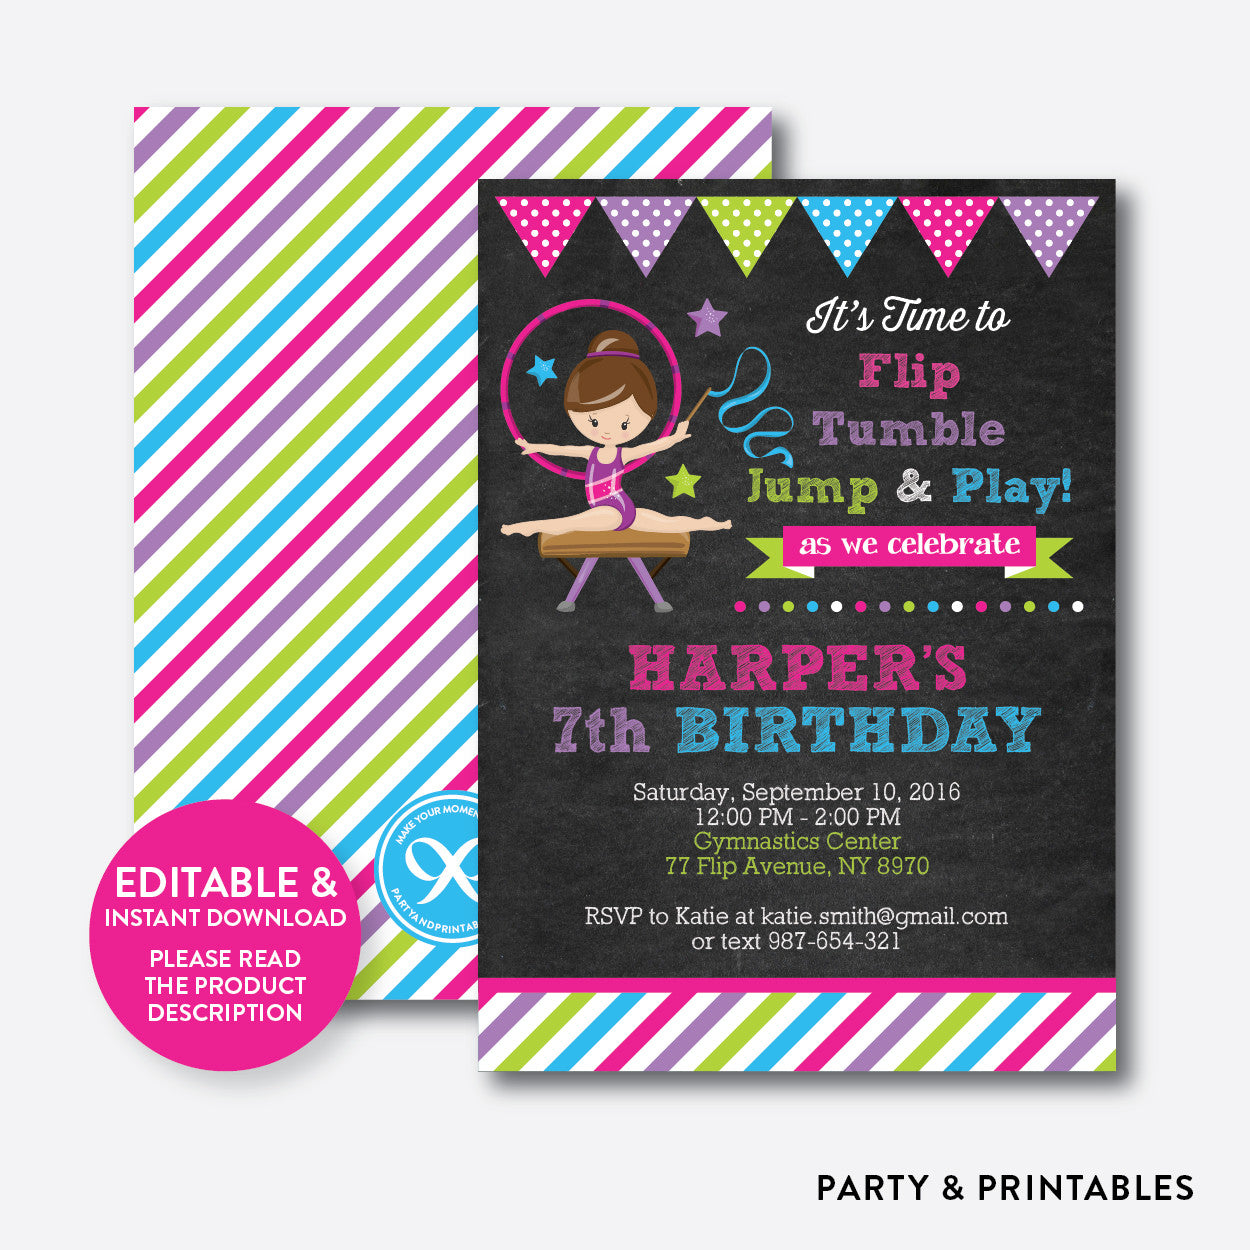 Gymnastics Chalkboard Kids Birthday Invitation / Editable / Instant Download (CKB.467), invitation - Party and Printables